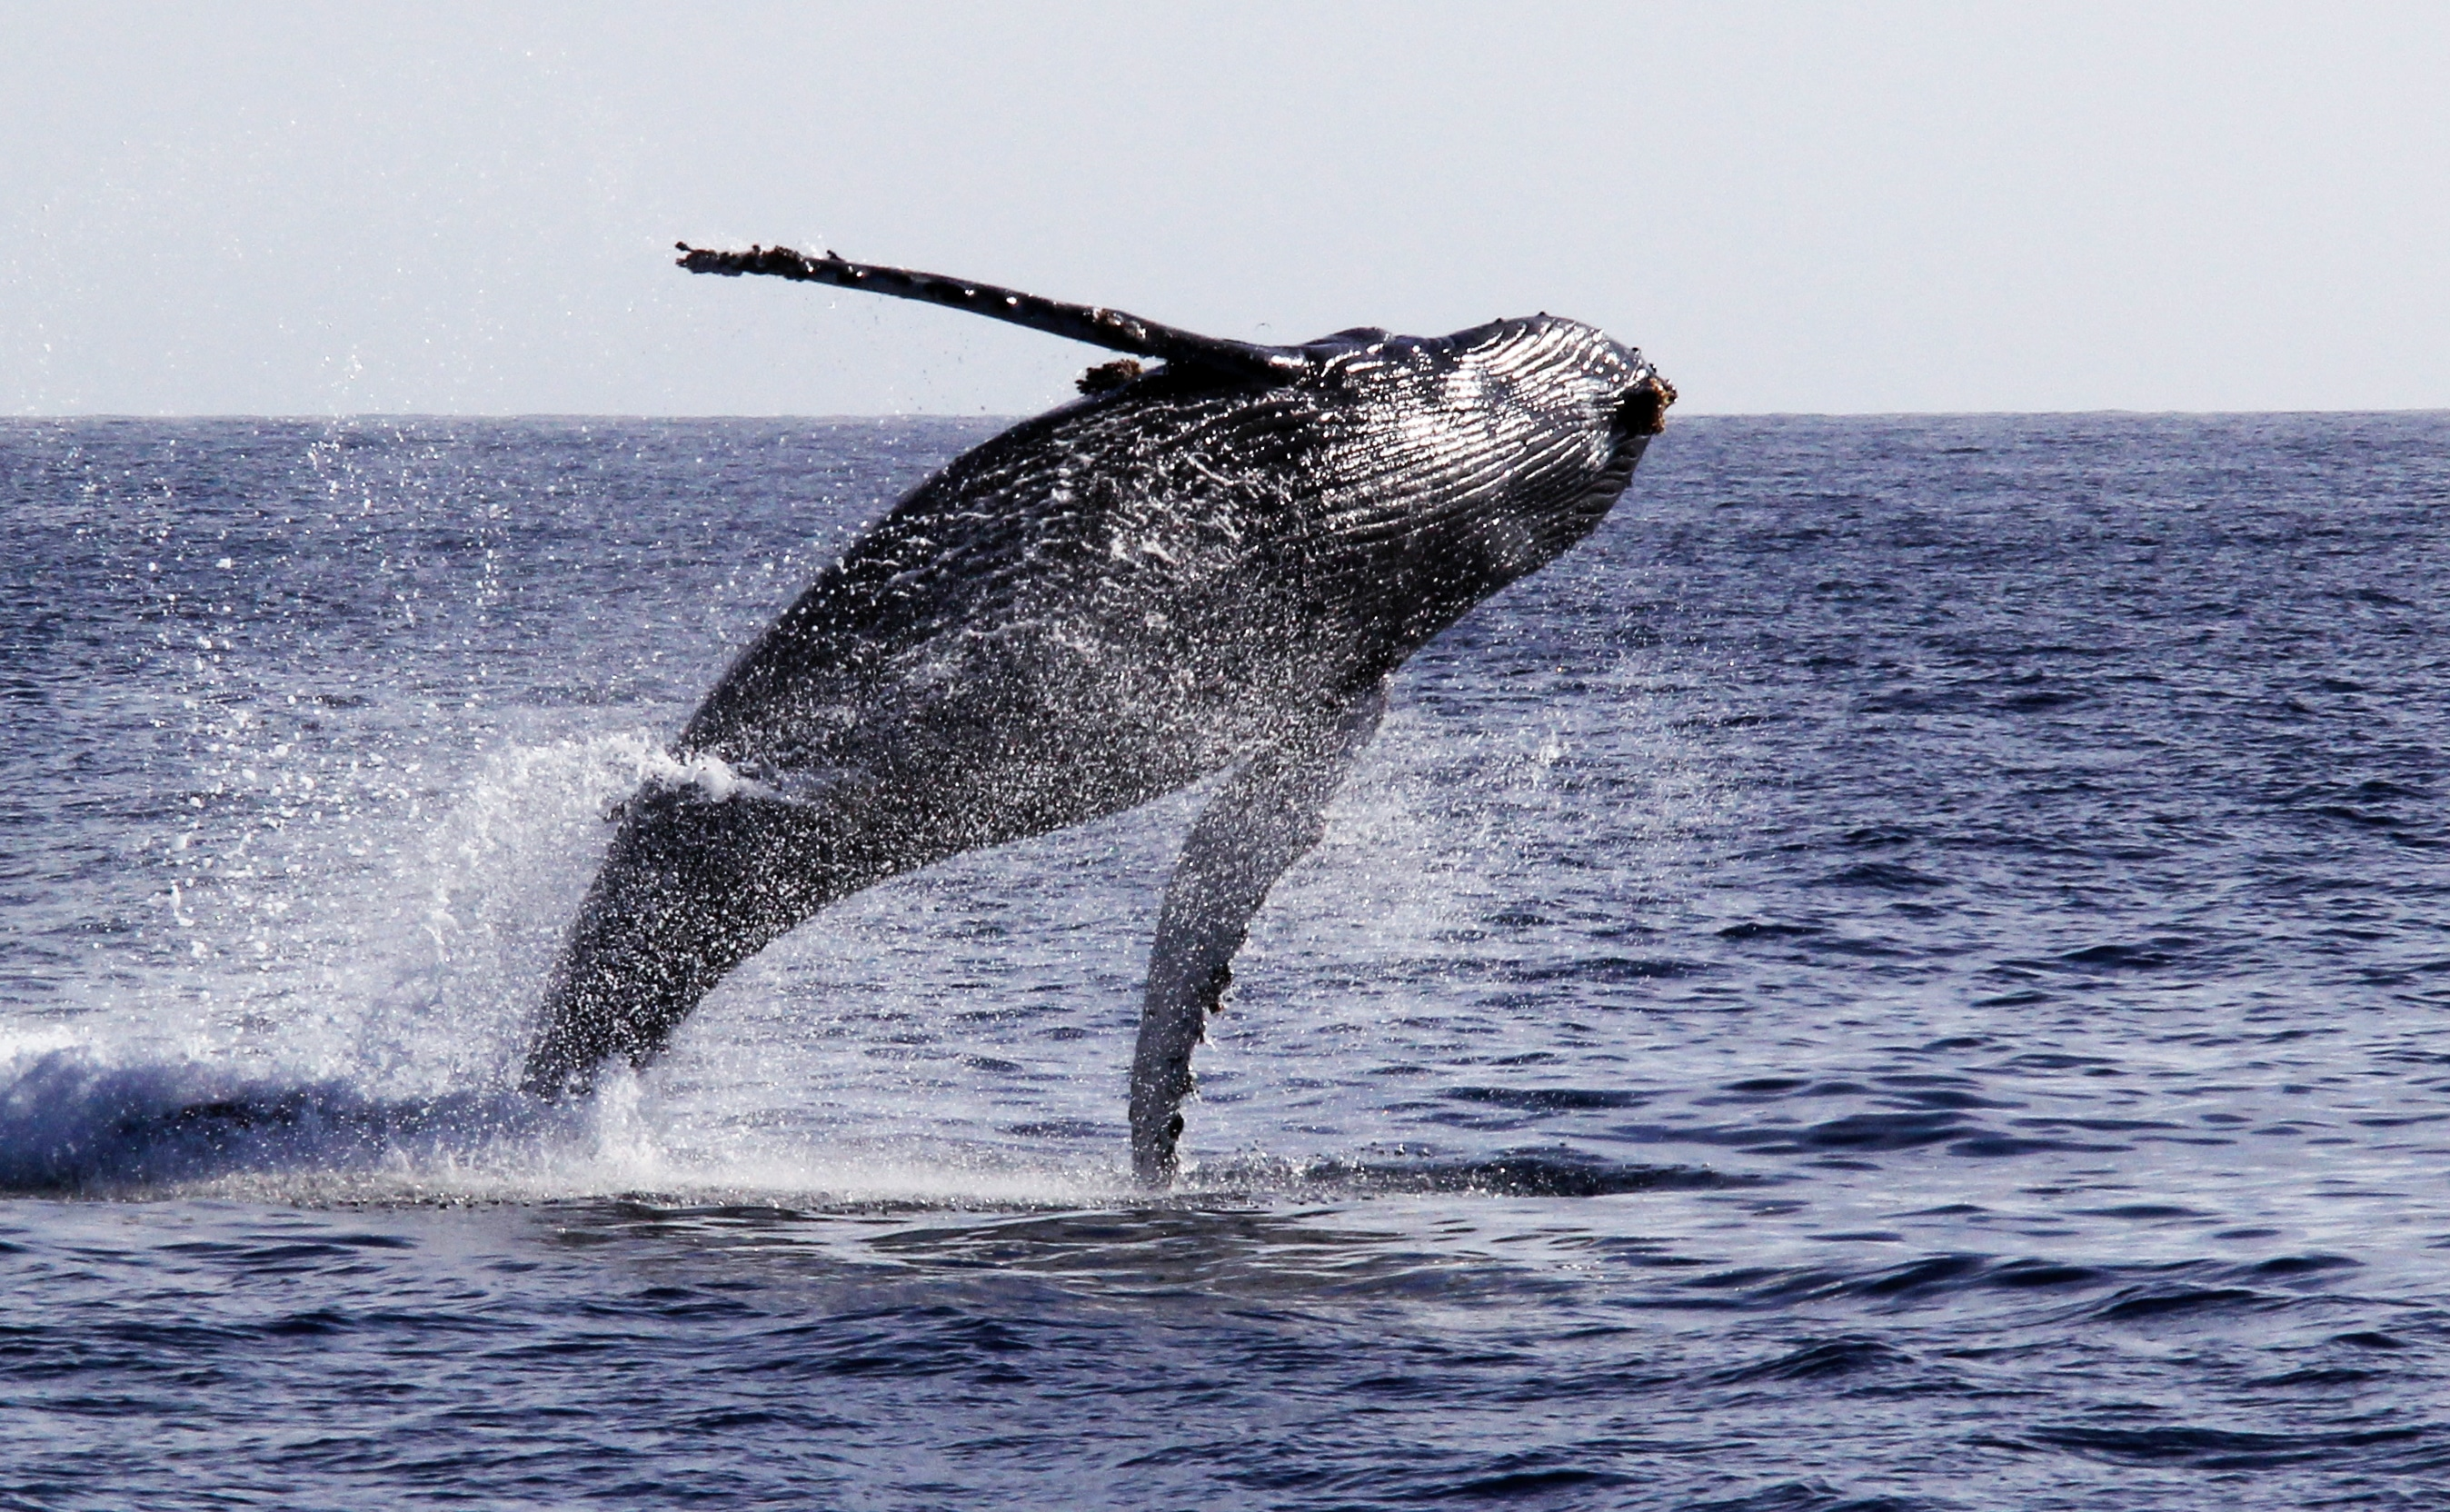 A large humpback whale breaches out of the water in the Pacific Ocean near San Diego.